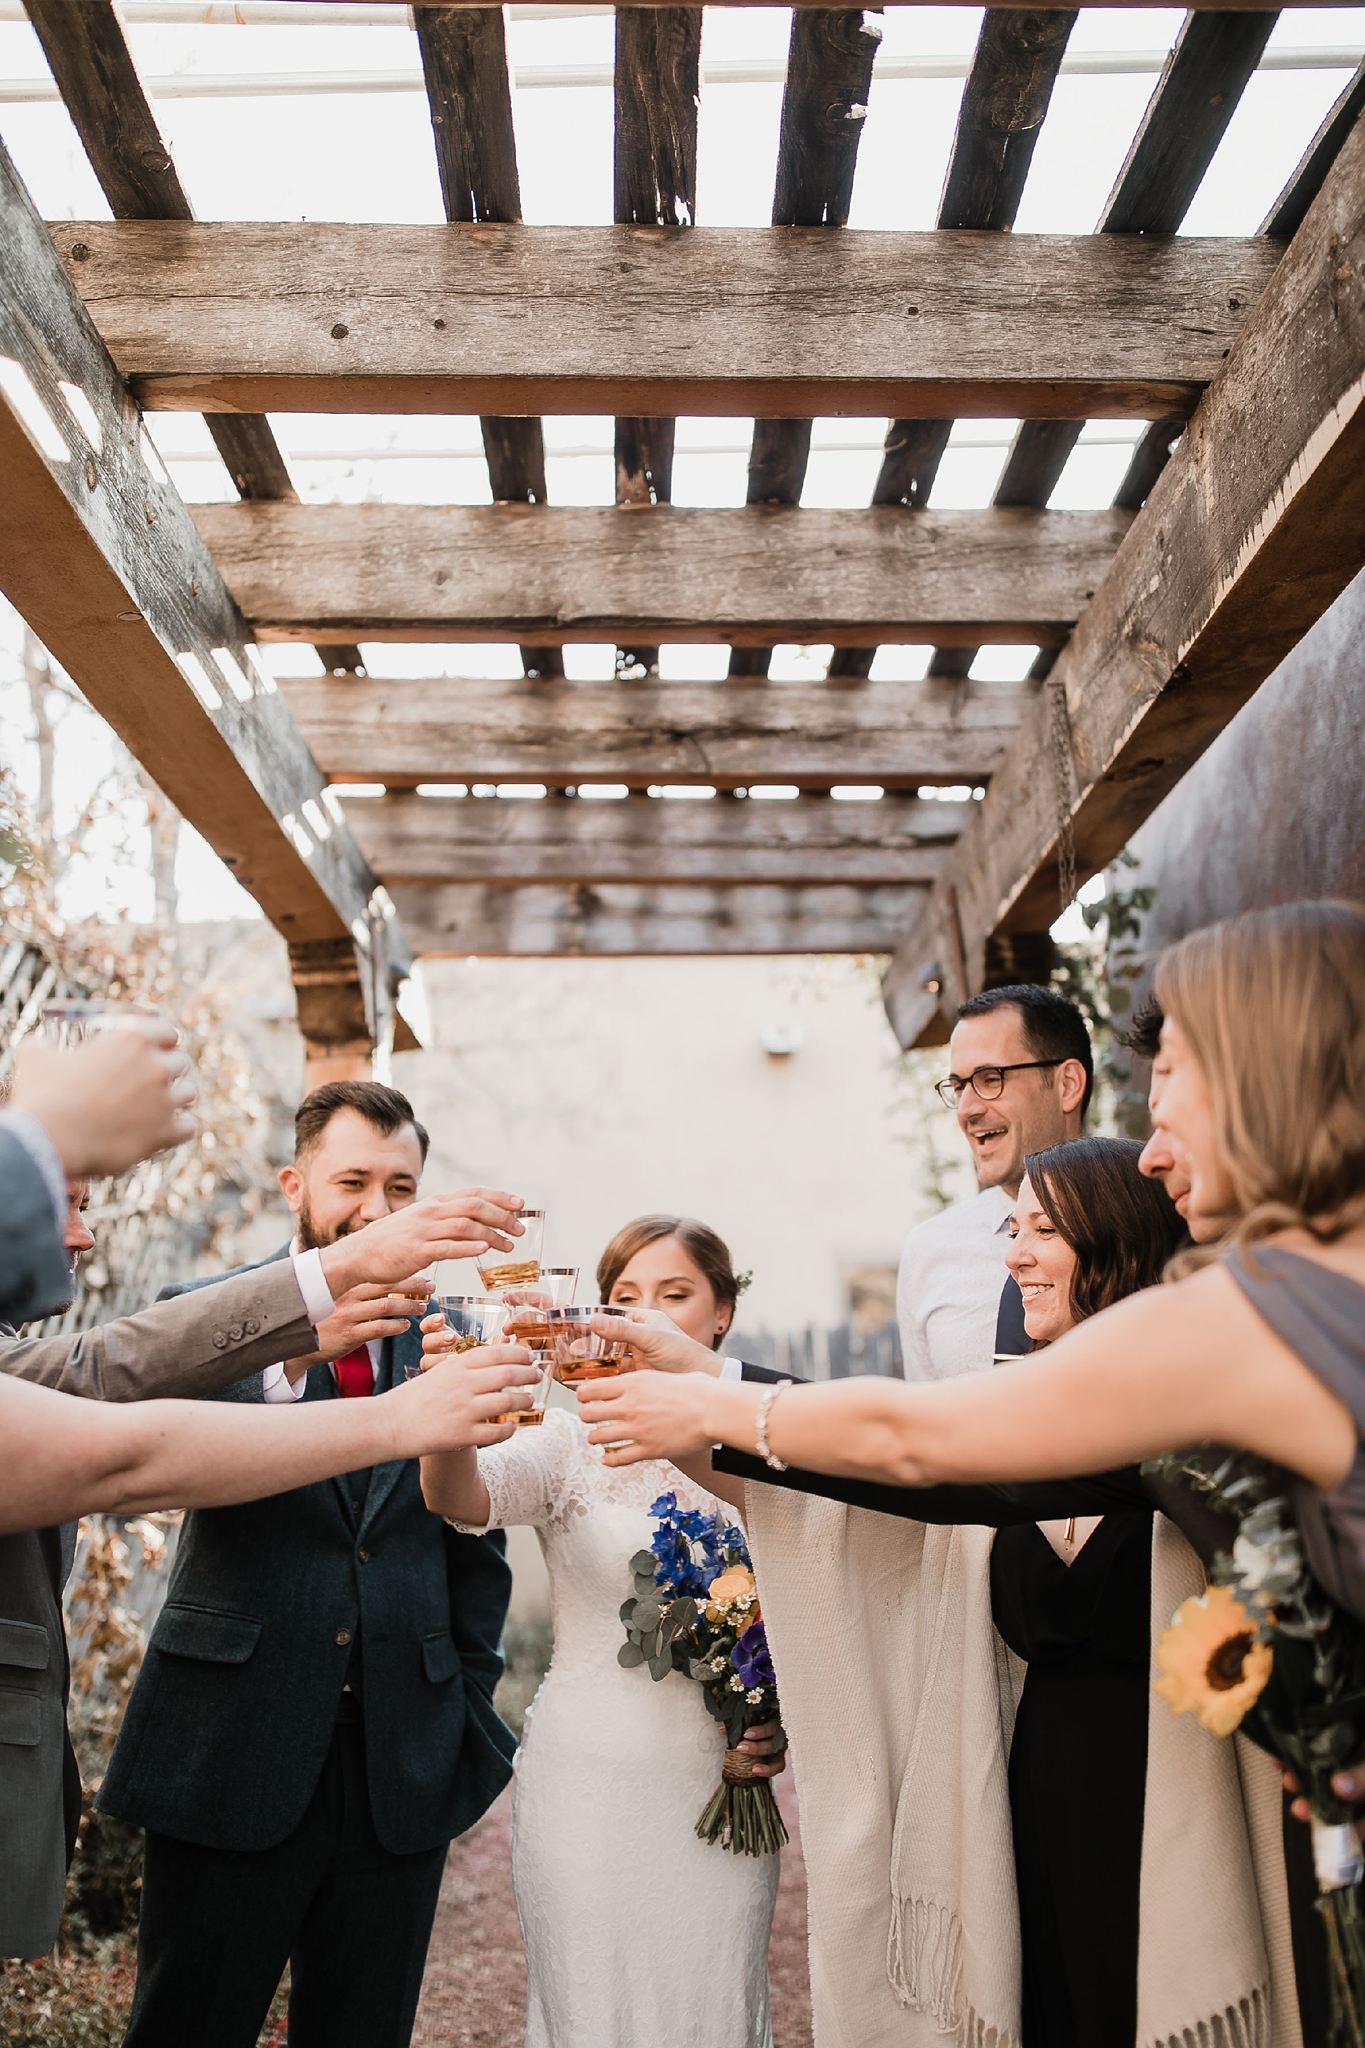 Alicia+lucia+photography+-+albuquerque+wedding+photographer+-+santa+fe+wedding+photography+-+new+mexico+wedding+photographer+-+albuquerque+wedding+-+sarabande+bed+breakfast+-+bed+and+breakfast+wedding_0036.jpg